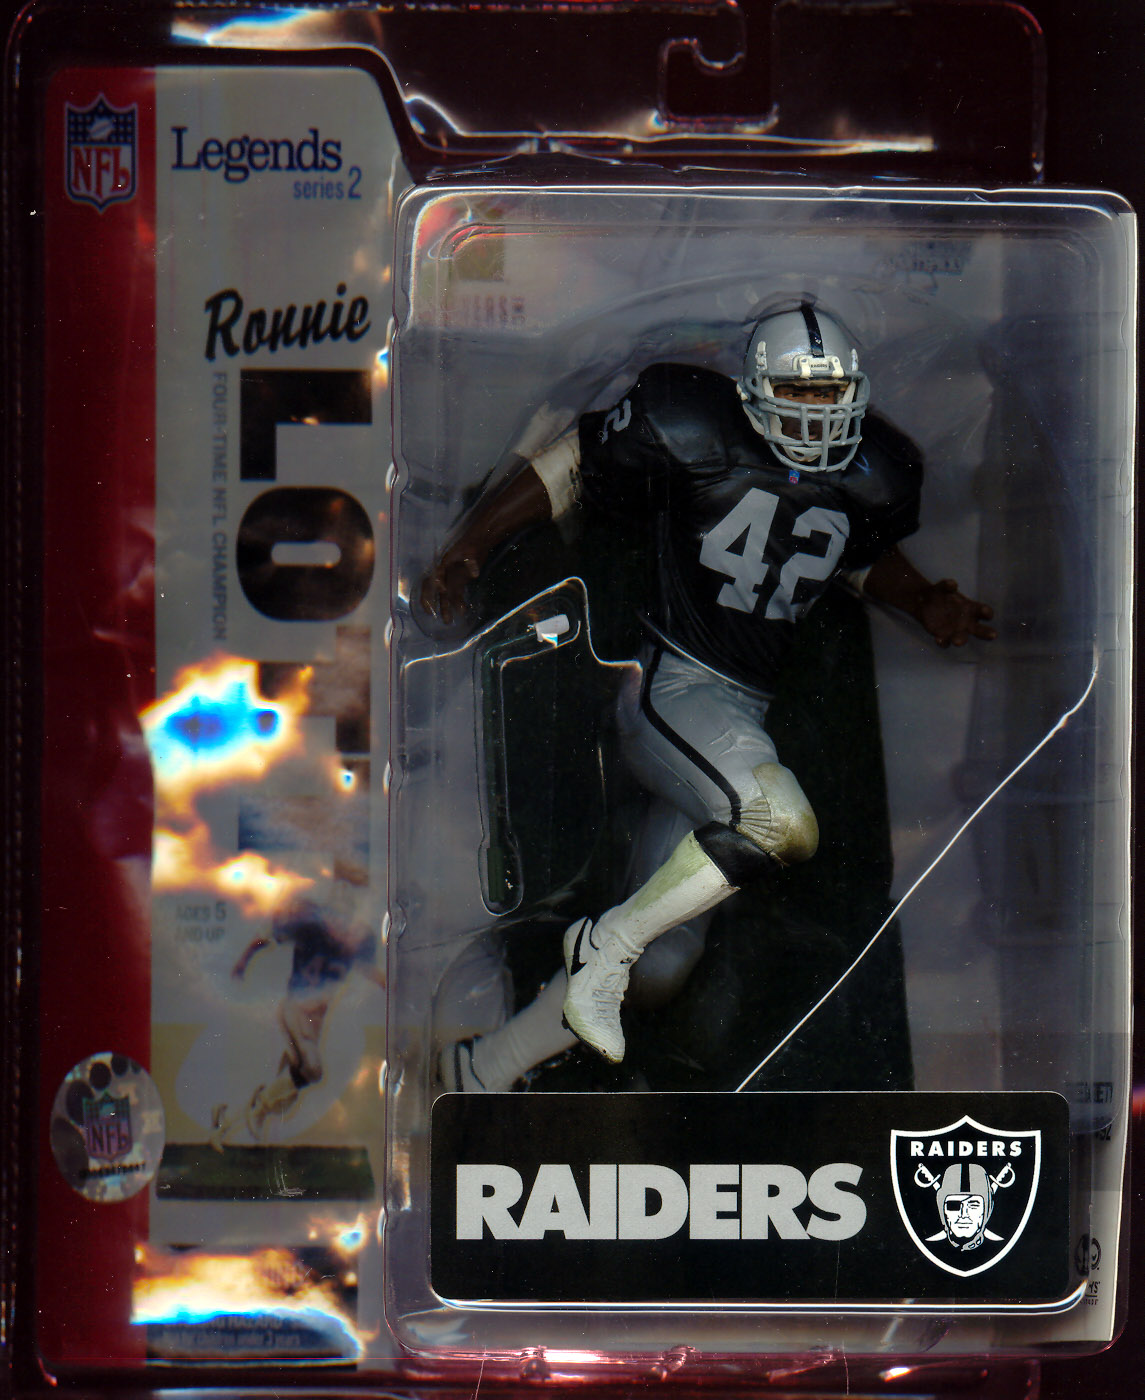 Ronnie Lott (Legends 2, Raiders uniform)